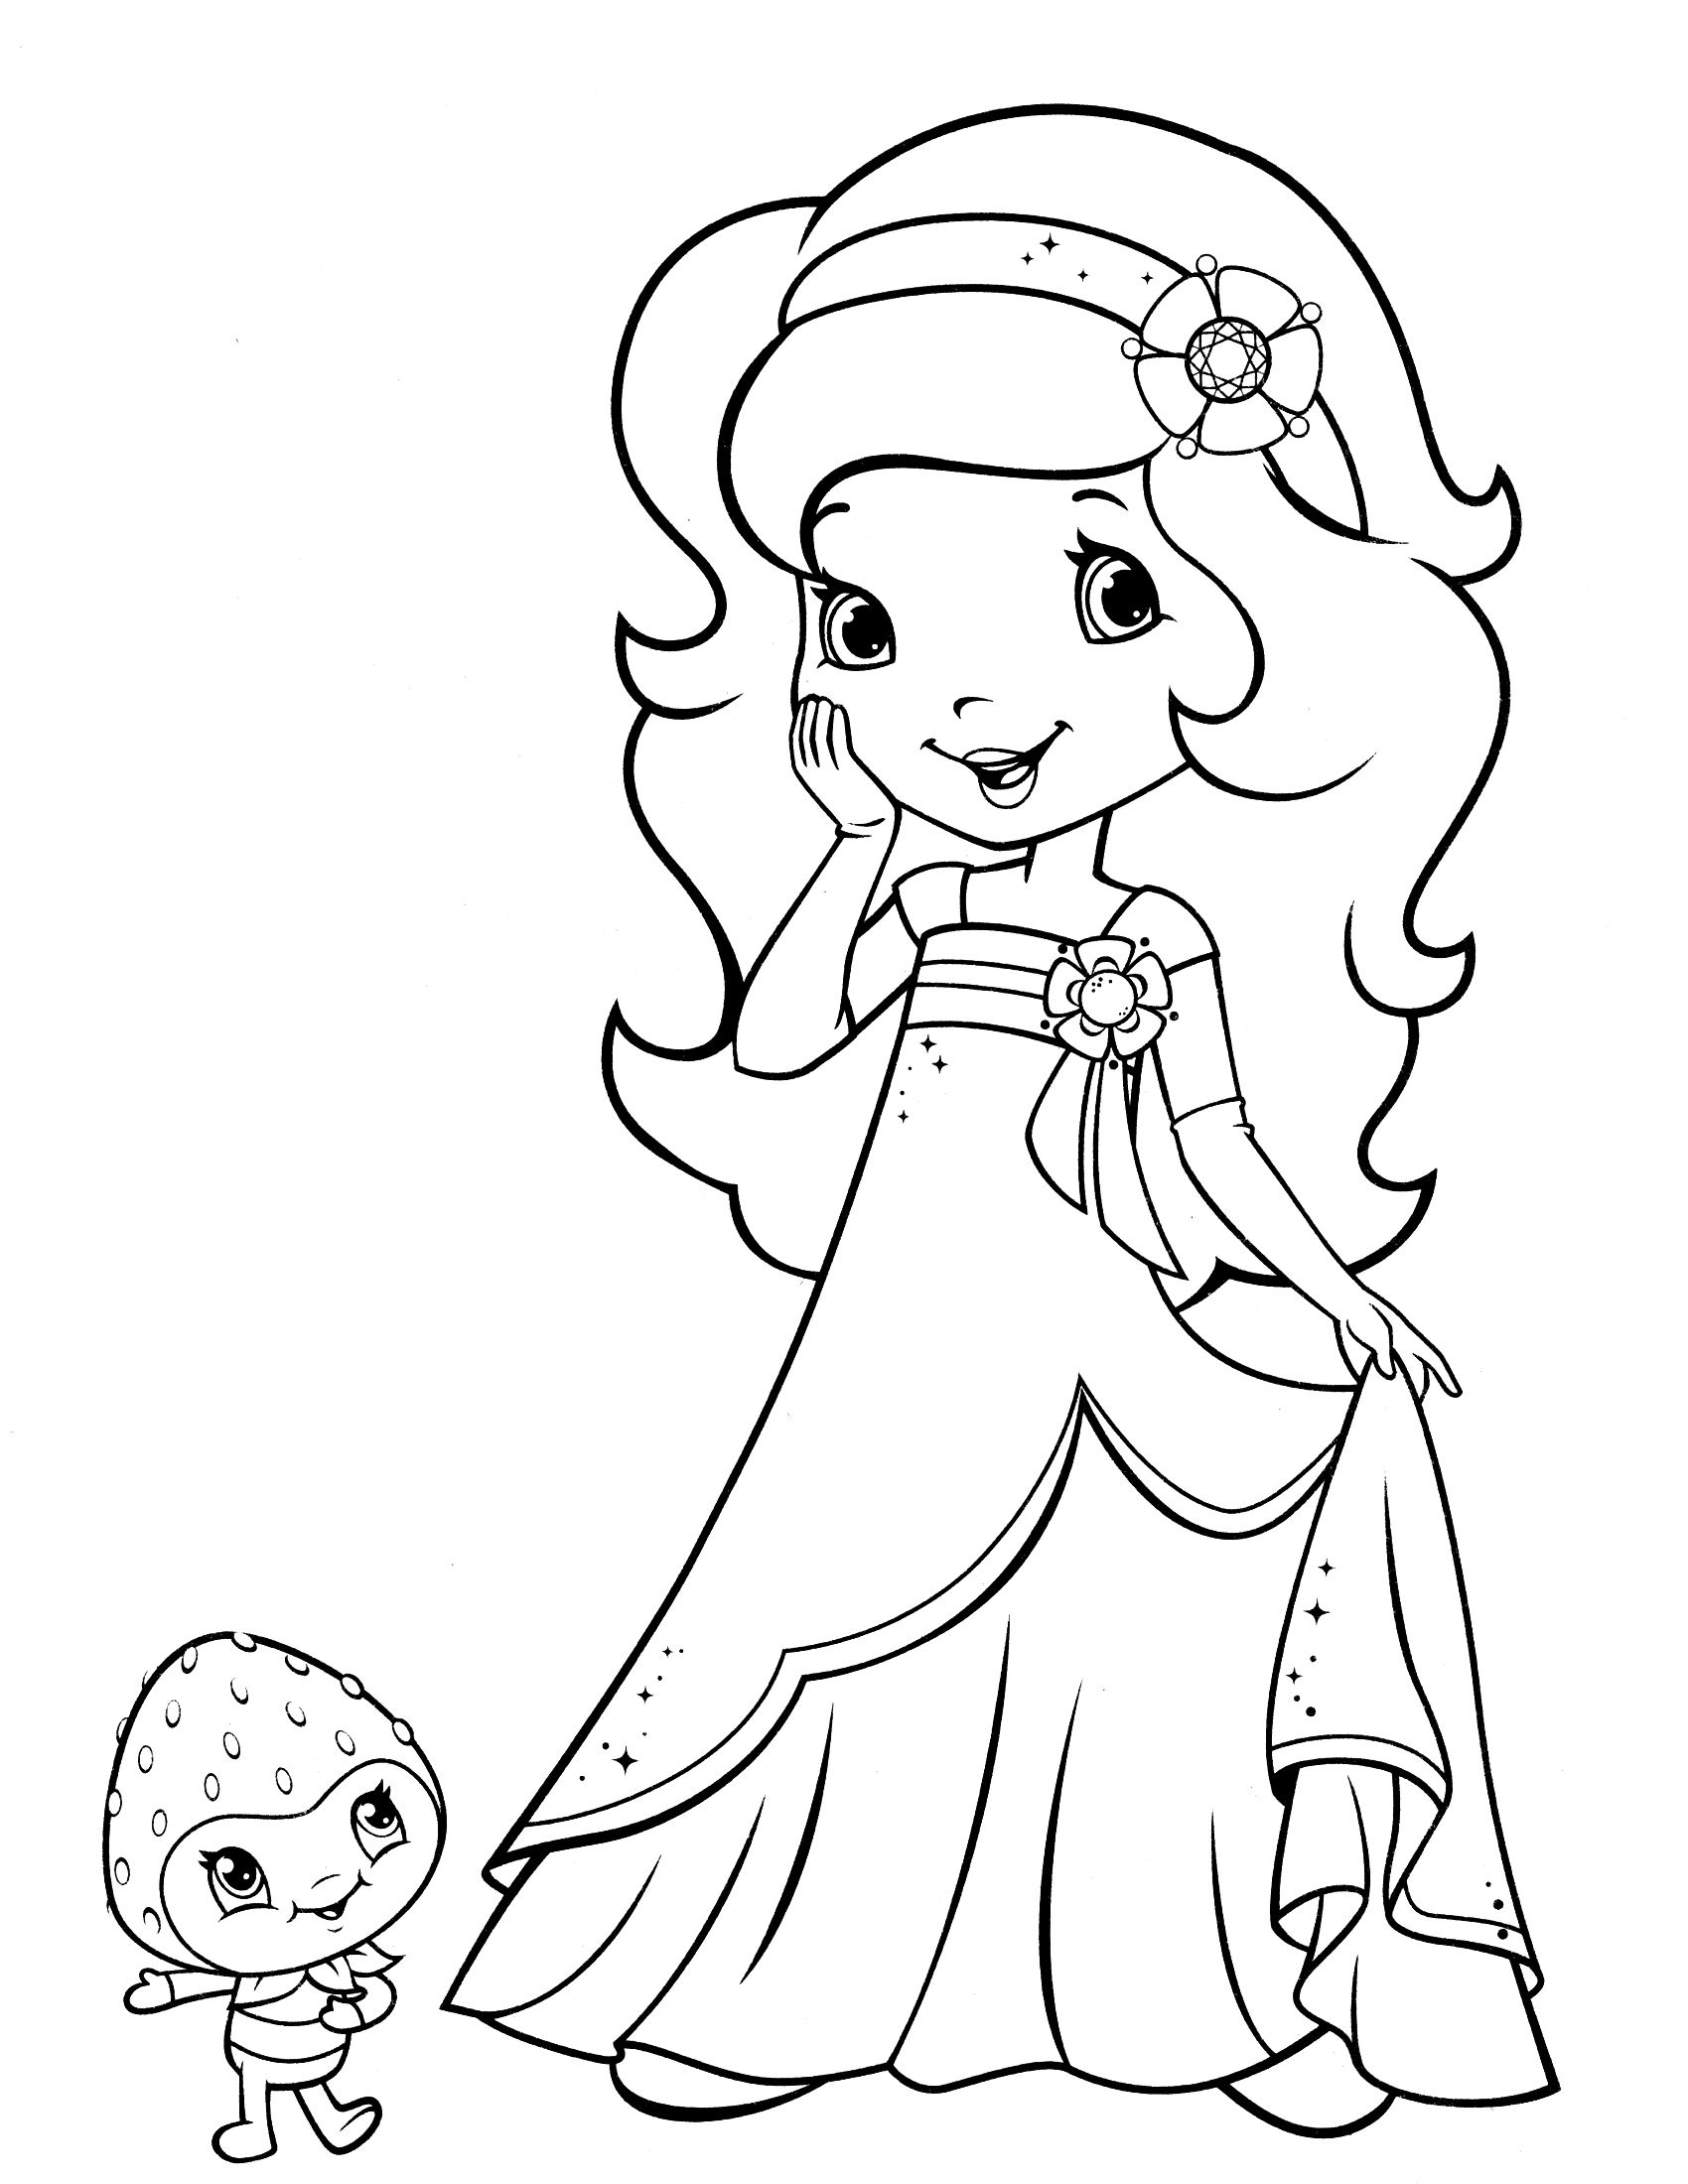 strawberry shortcake princess coloring pages ilove quotprincessesquot strawberry shortcake 9271200 coloring shortcake strawberry pages princess